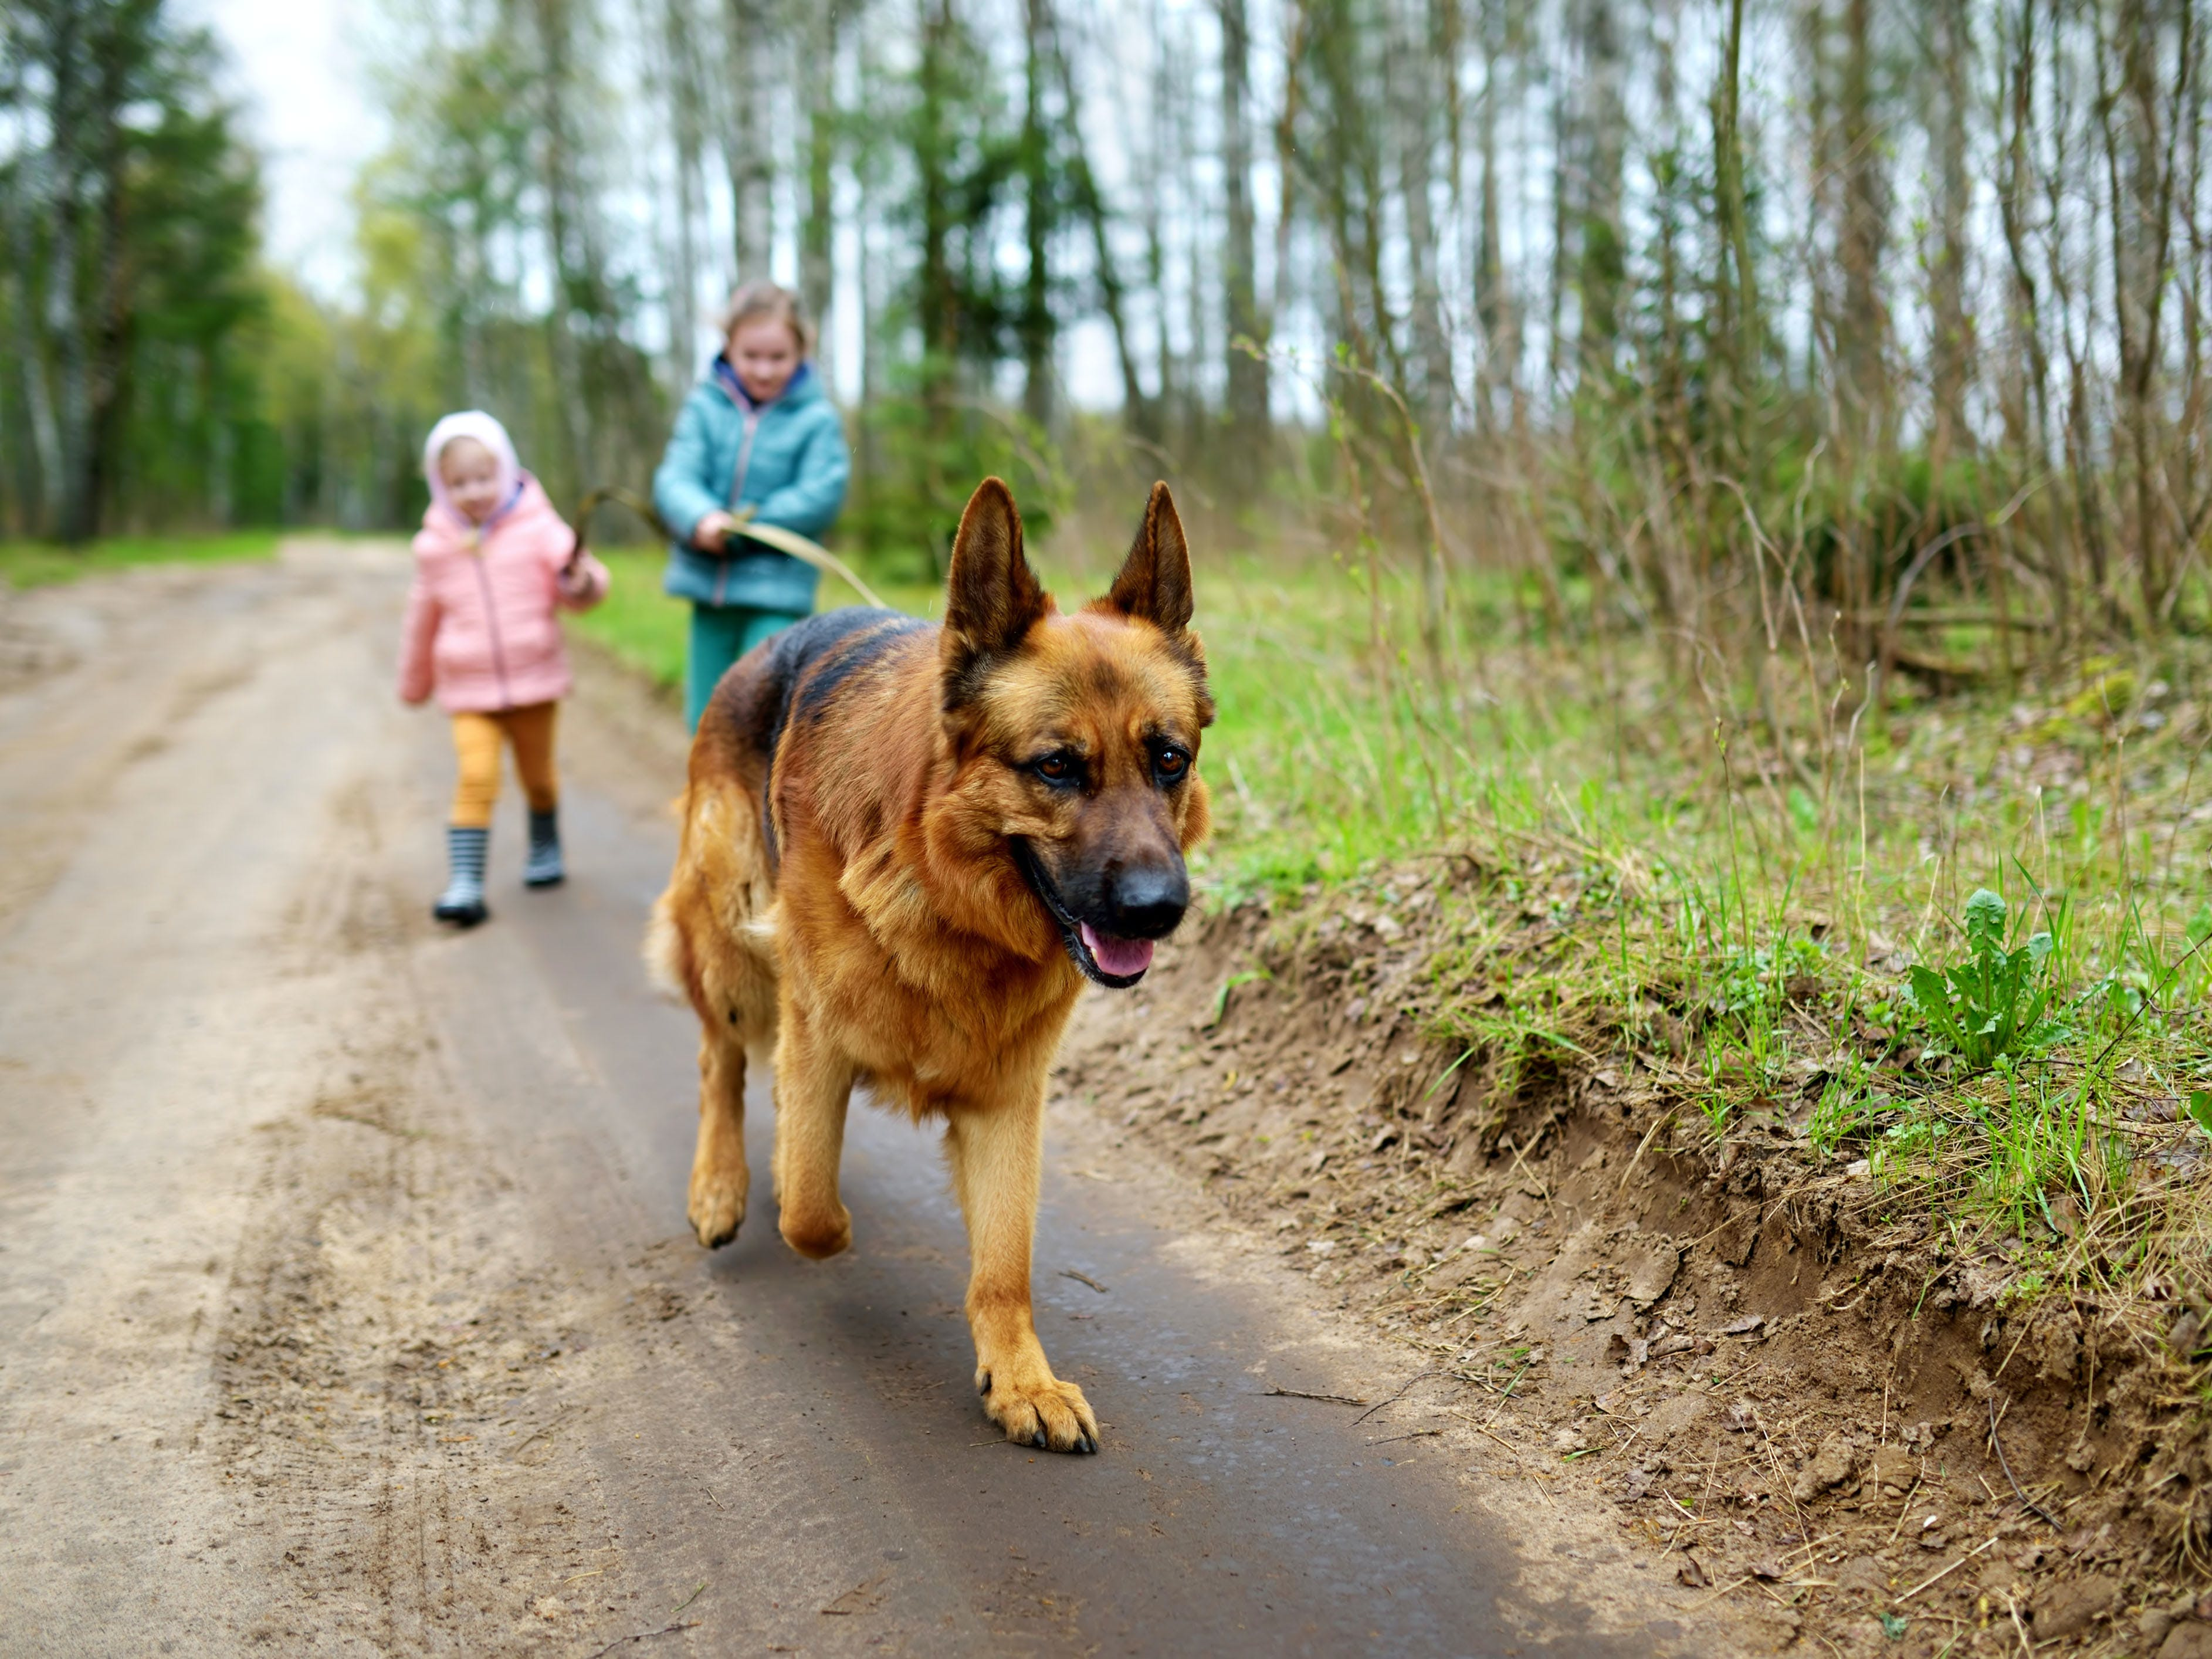 daily-wag-dog-walking-101-etiquette-rules-for-hiking-trails-hero-image